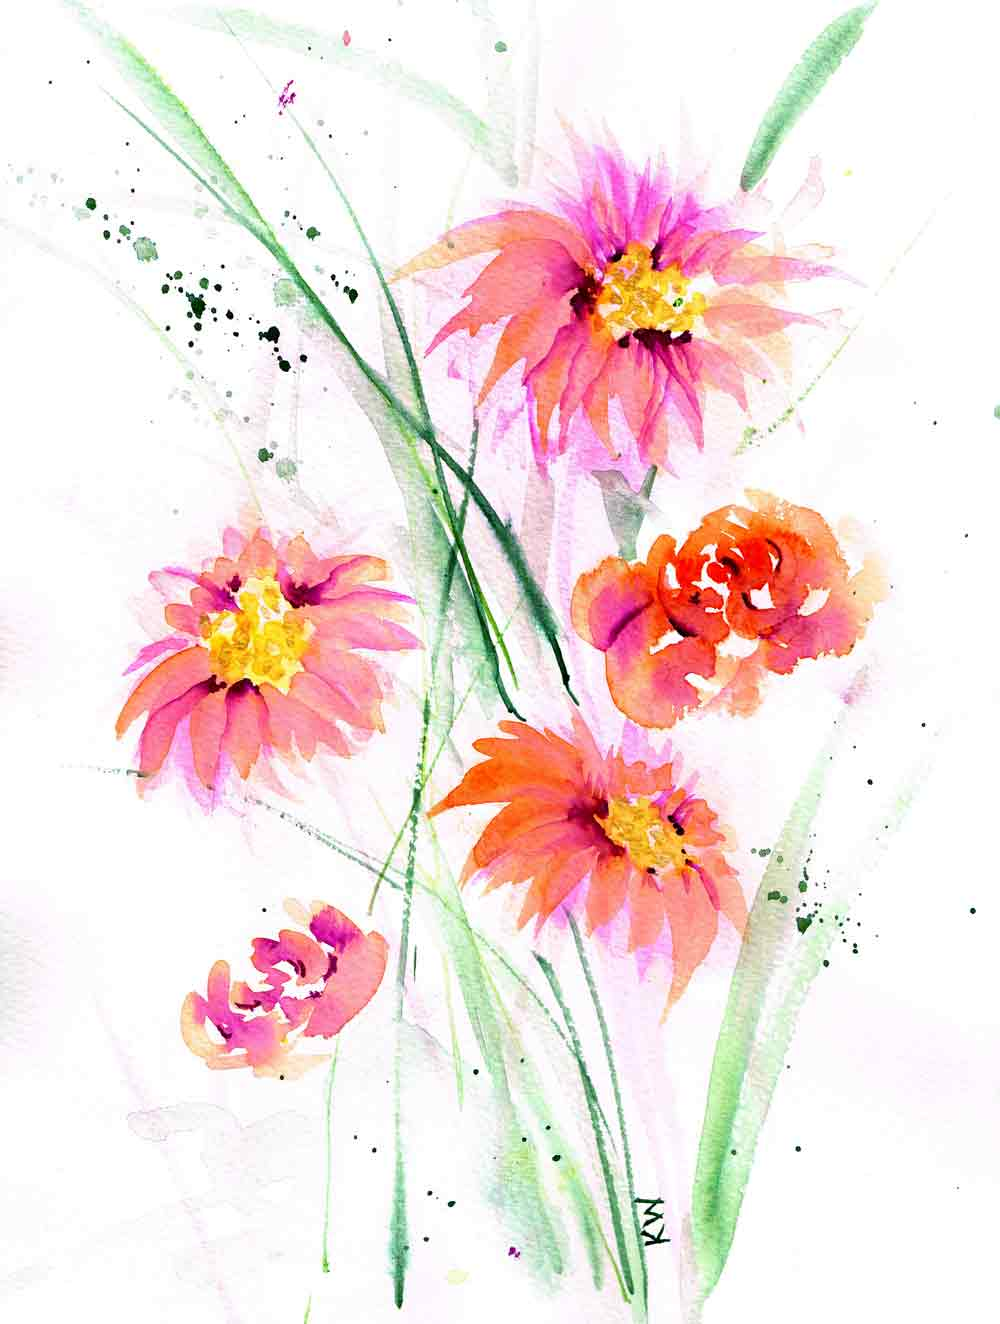 Fresh-flowers-scan-no-2-kw.jpg